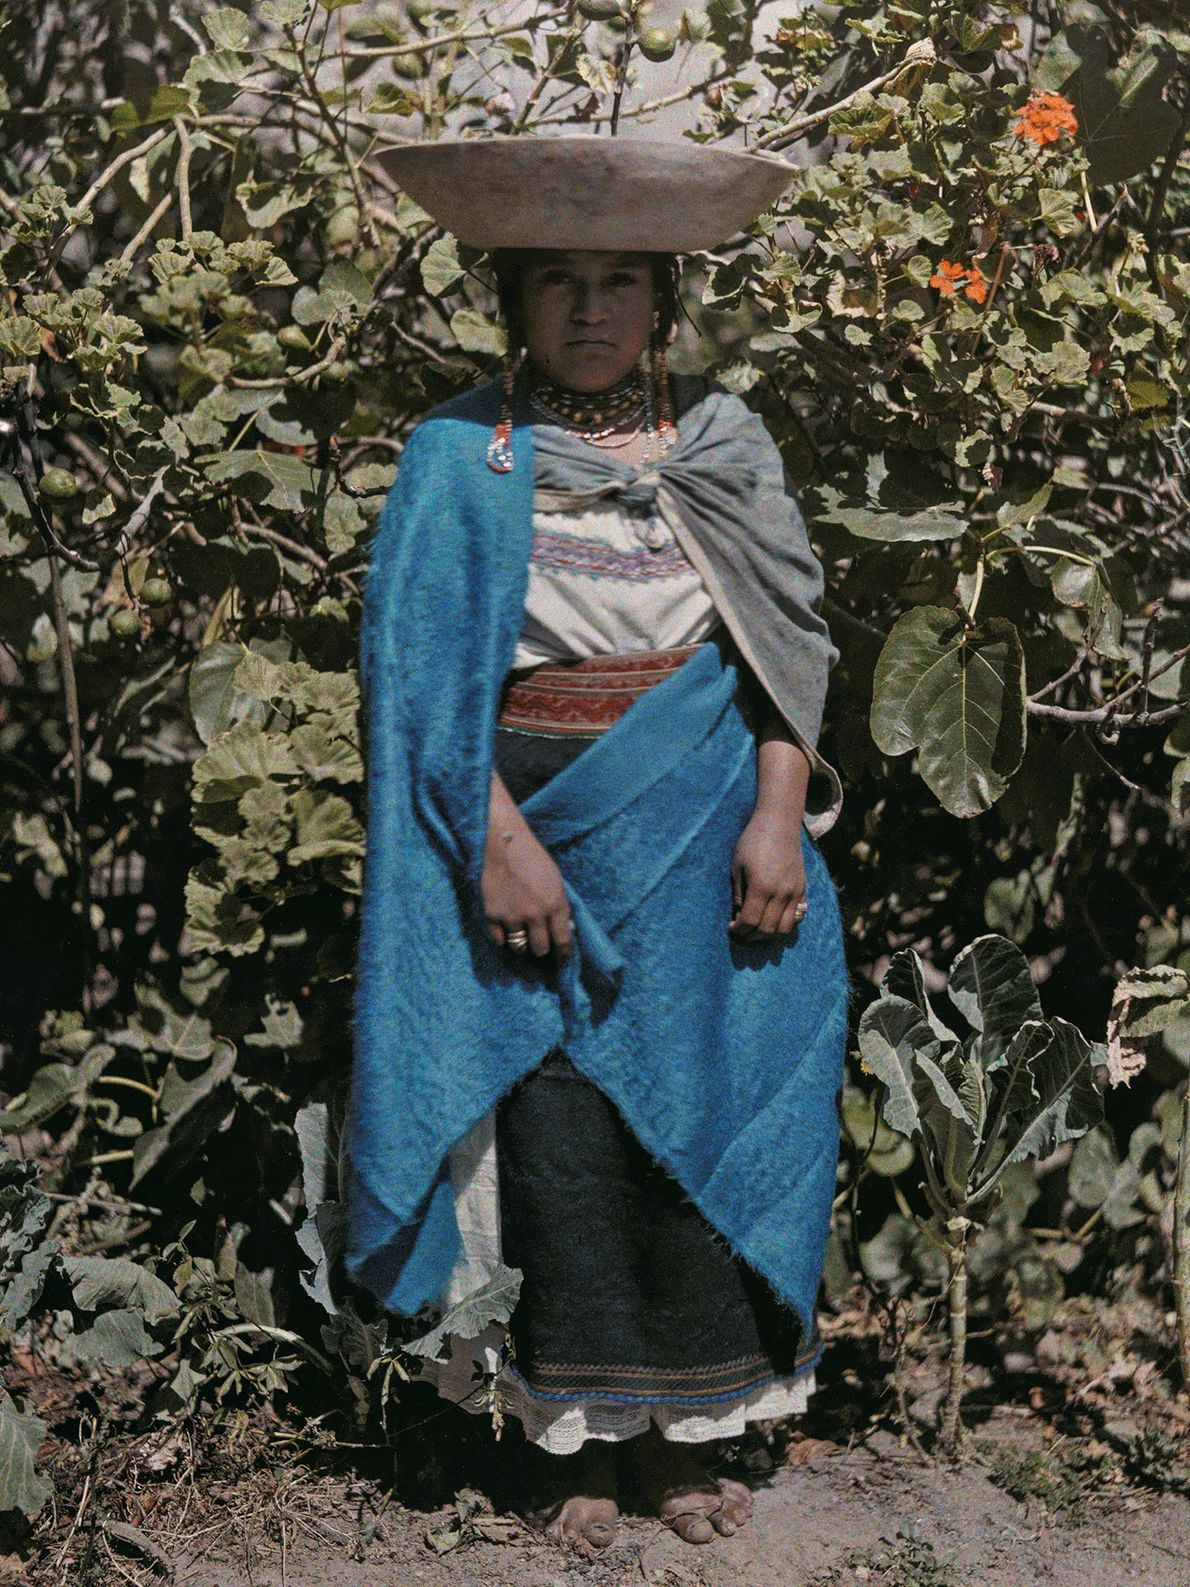 A woman posing in front of a plant in Ecuador wears a hat with a bowl-shaped ...